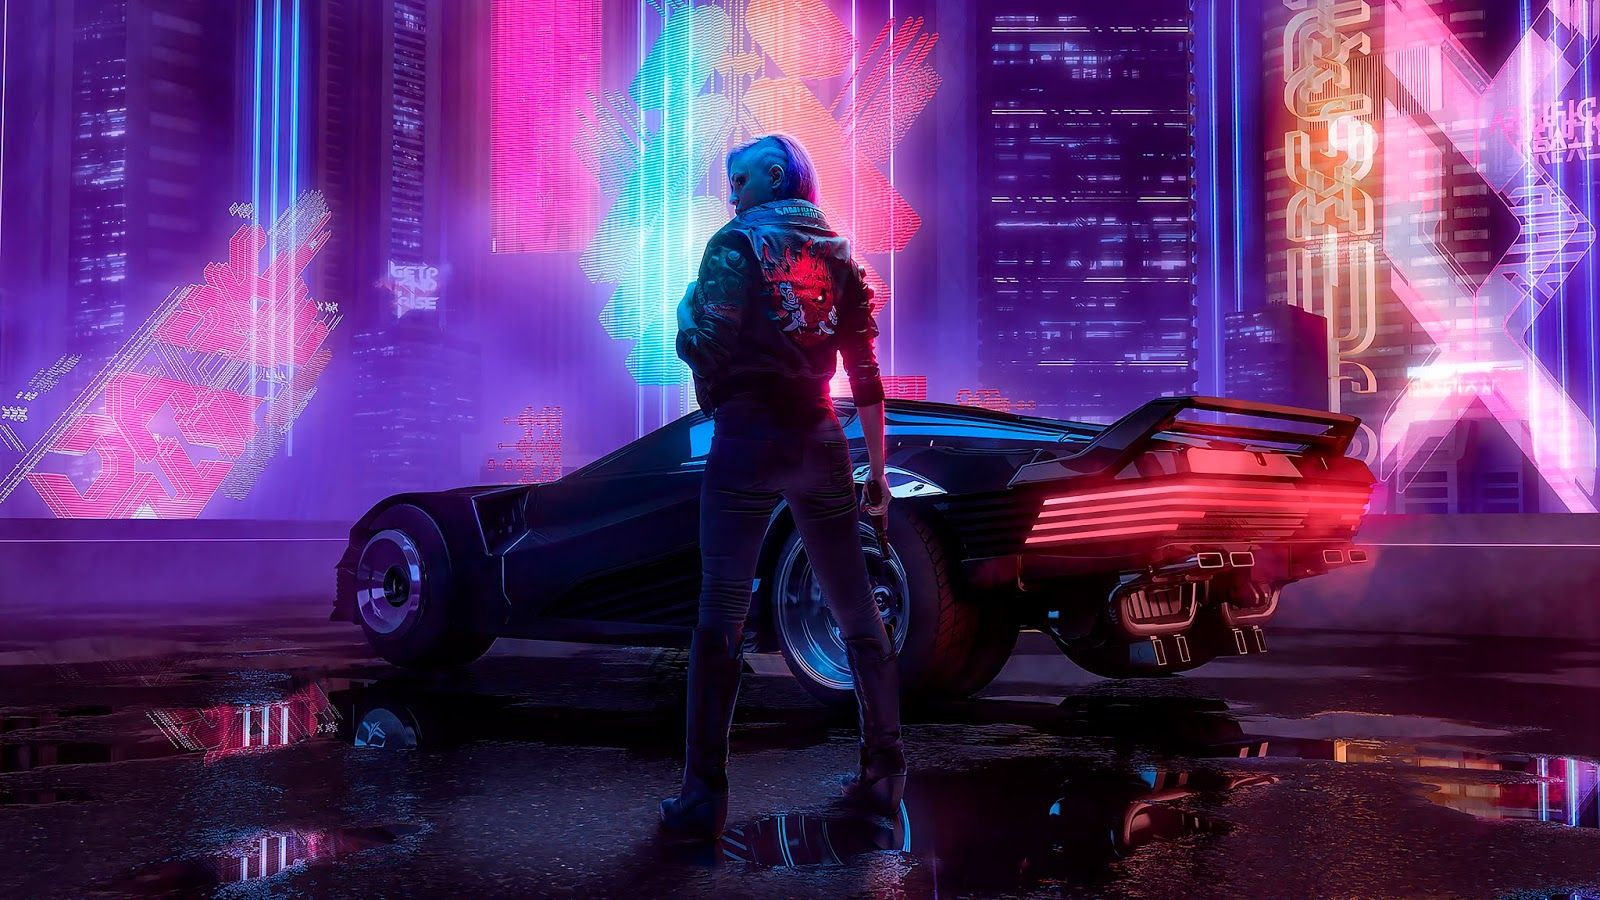 Cyberpunk 2077 Wallpaper For Desktop Cool Wallpapers Heroscreen Cc In 2020 Cyberpunk Cyberpunk 2077 Best Background Images